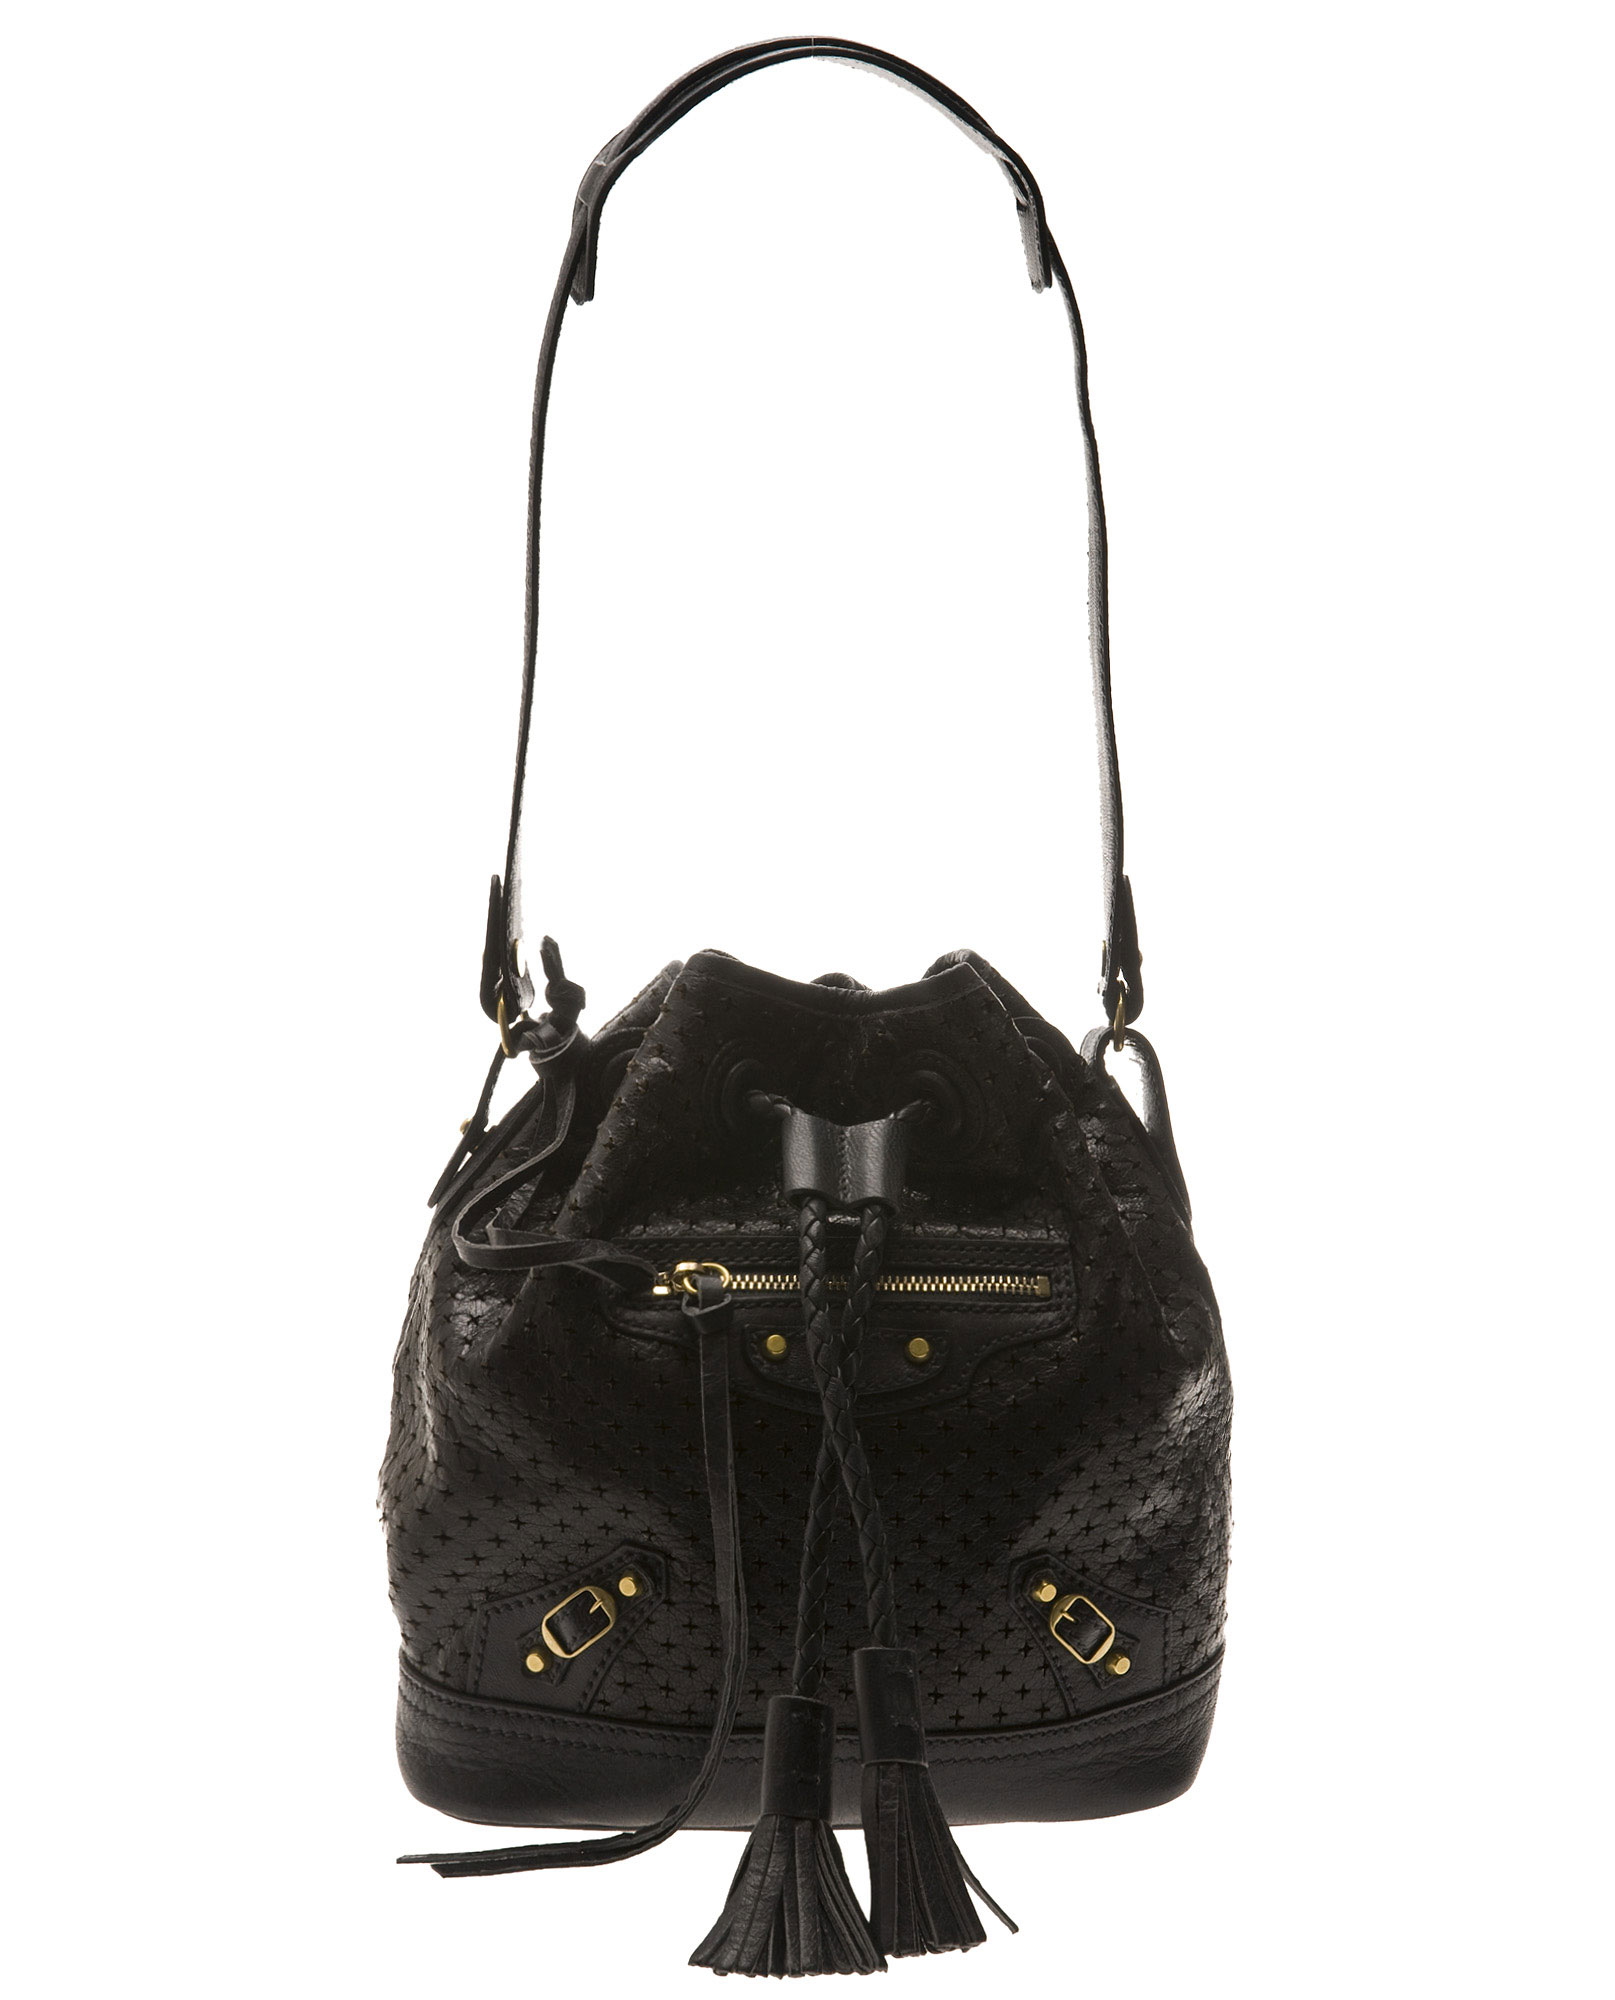 10c99cce9 Balenciaga Pampille Bucket Bag in Black - Lyst